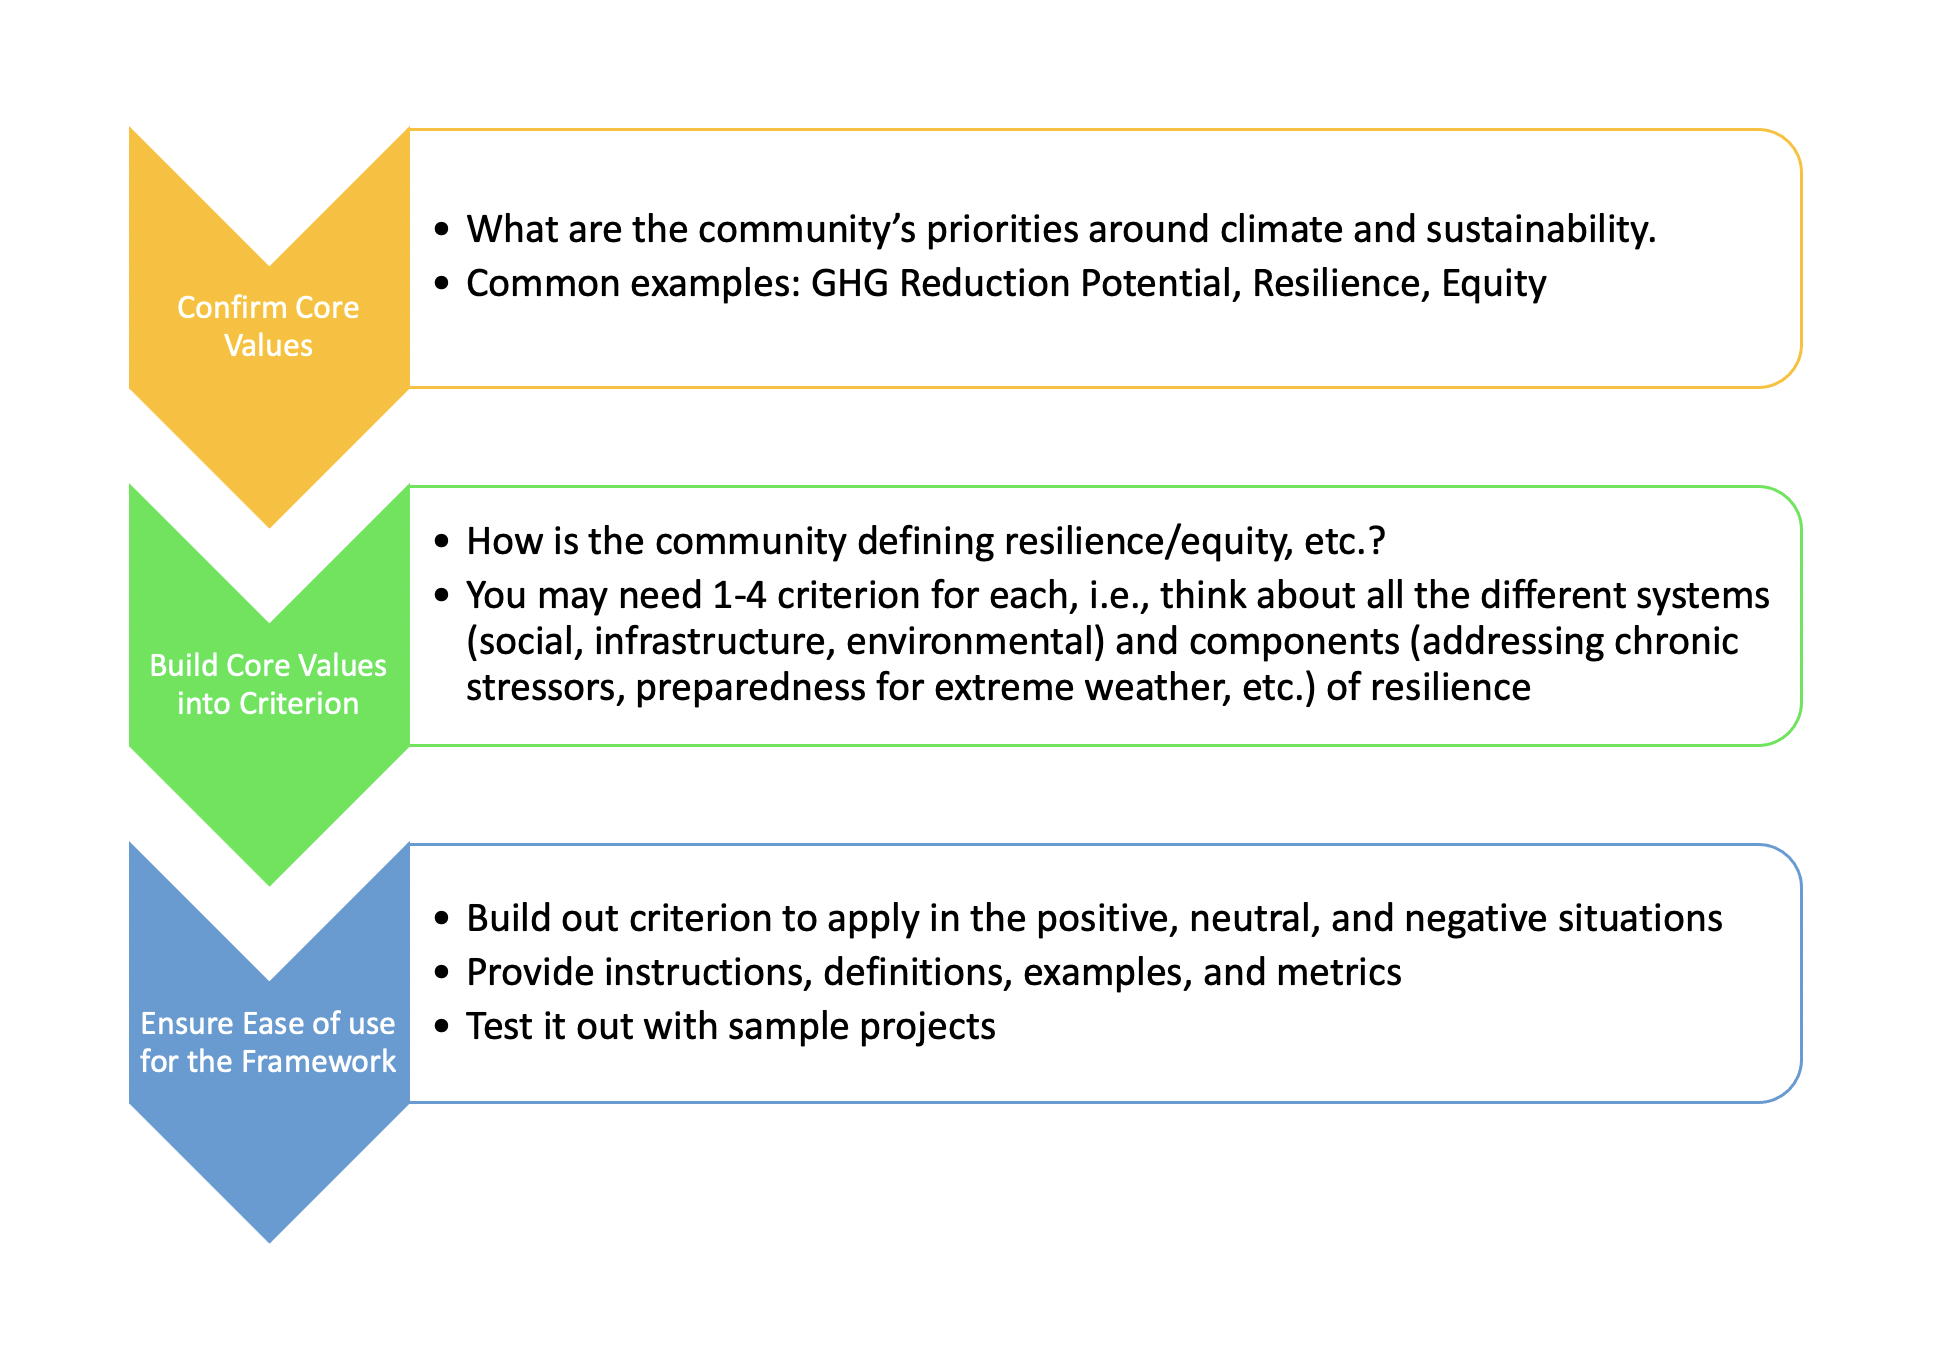 This Framework Can Institutionalize Your Climate + Sustainability Goals